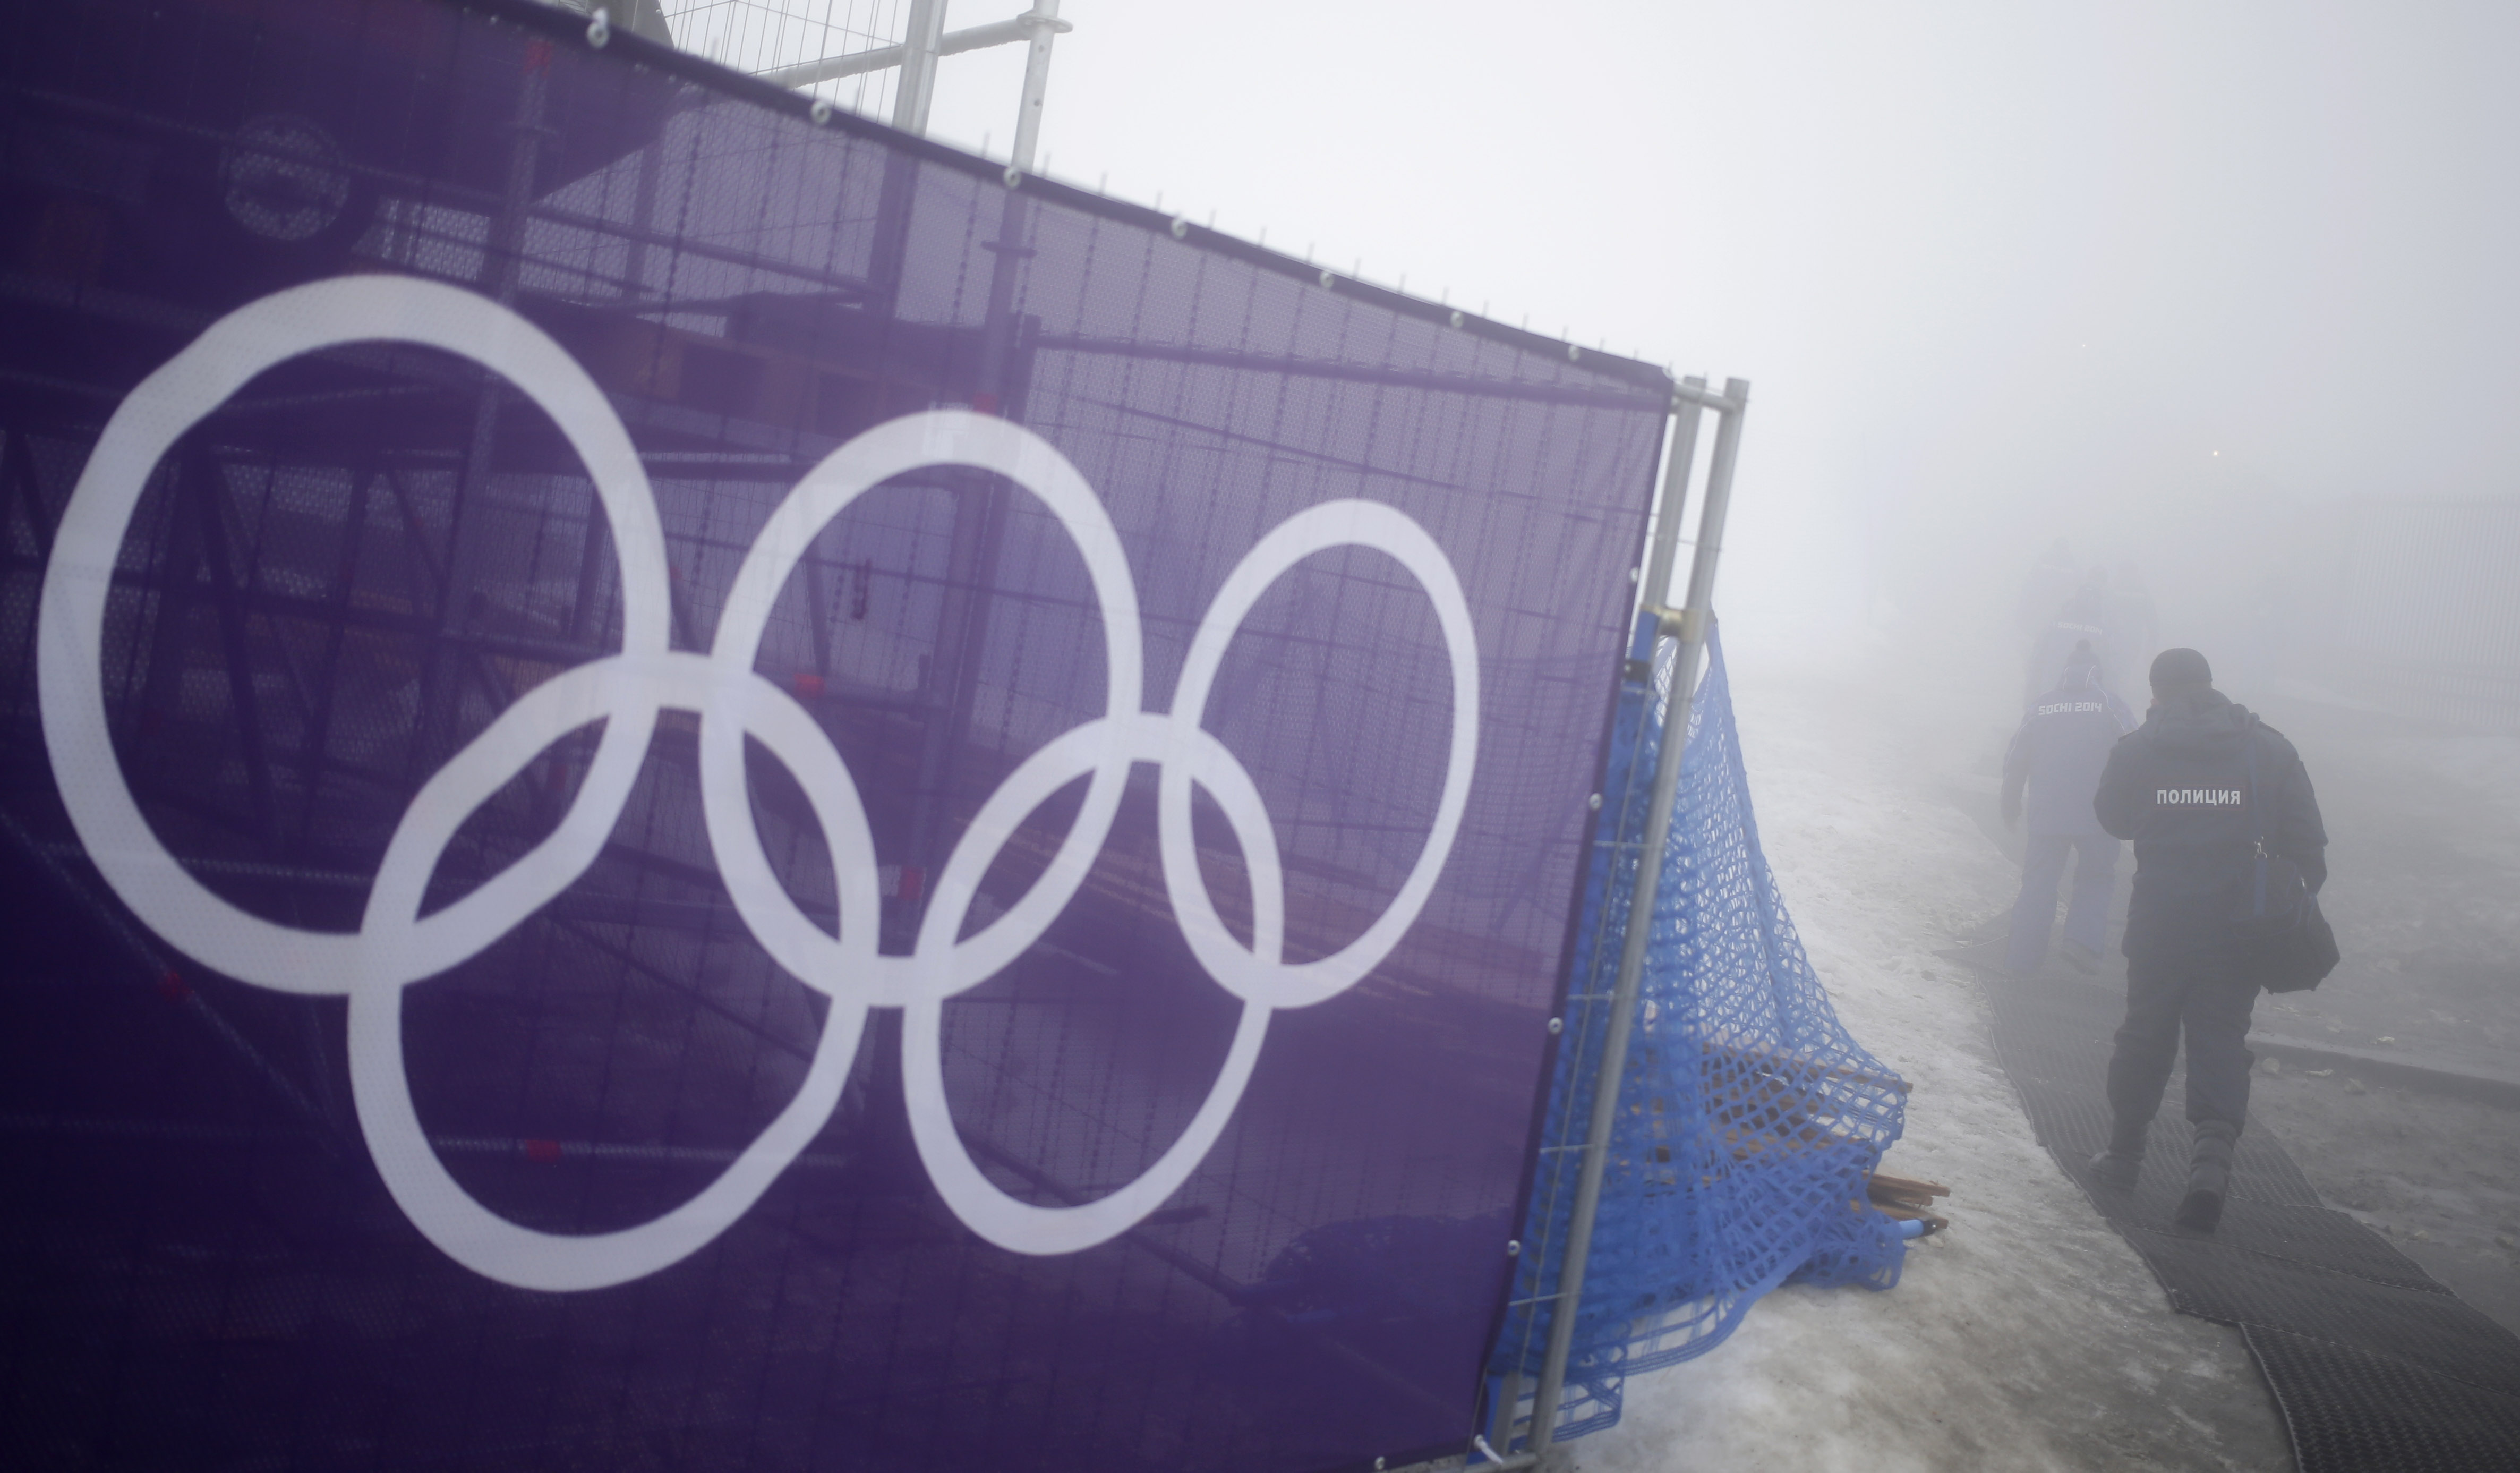 Security guards walk past the Olympic rings prior to a men's snowboard cross competition at the Rosa Khutor Extreme Park, at the 2014 Winter Olympics, Monday, Feb. 17, 2014, in Krasnaya Polyana, Russia. (AP Photo/Andy Wong)